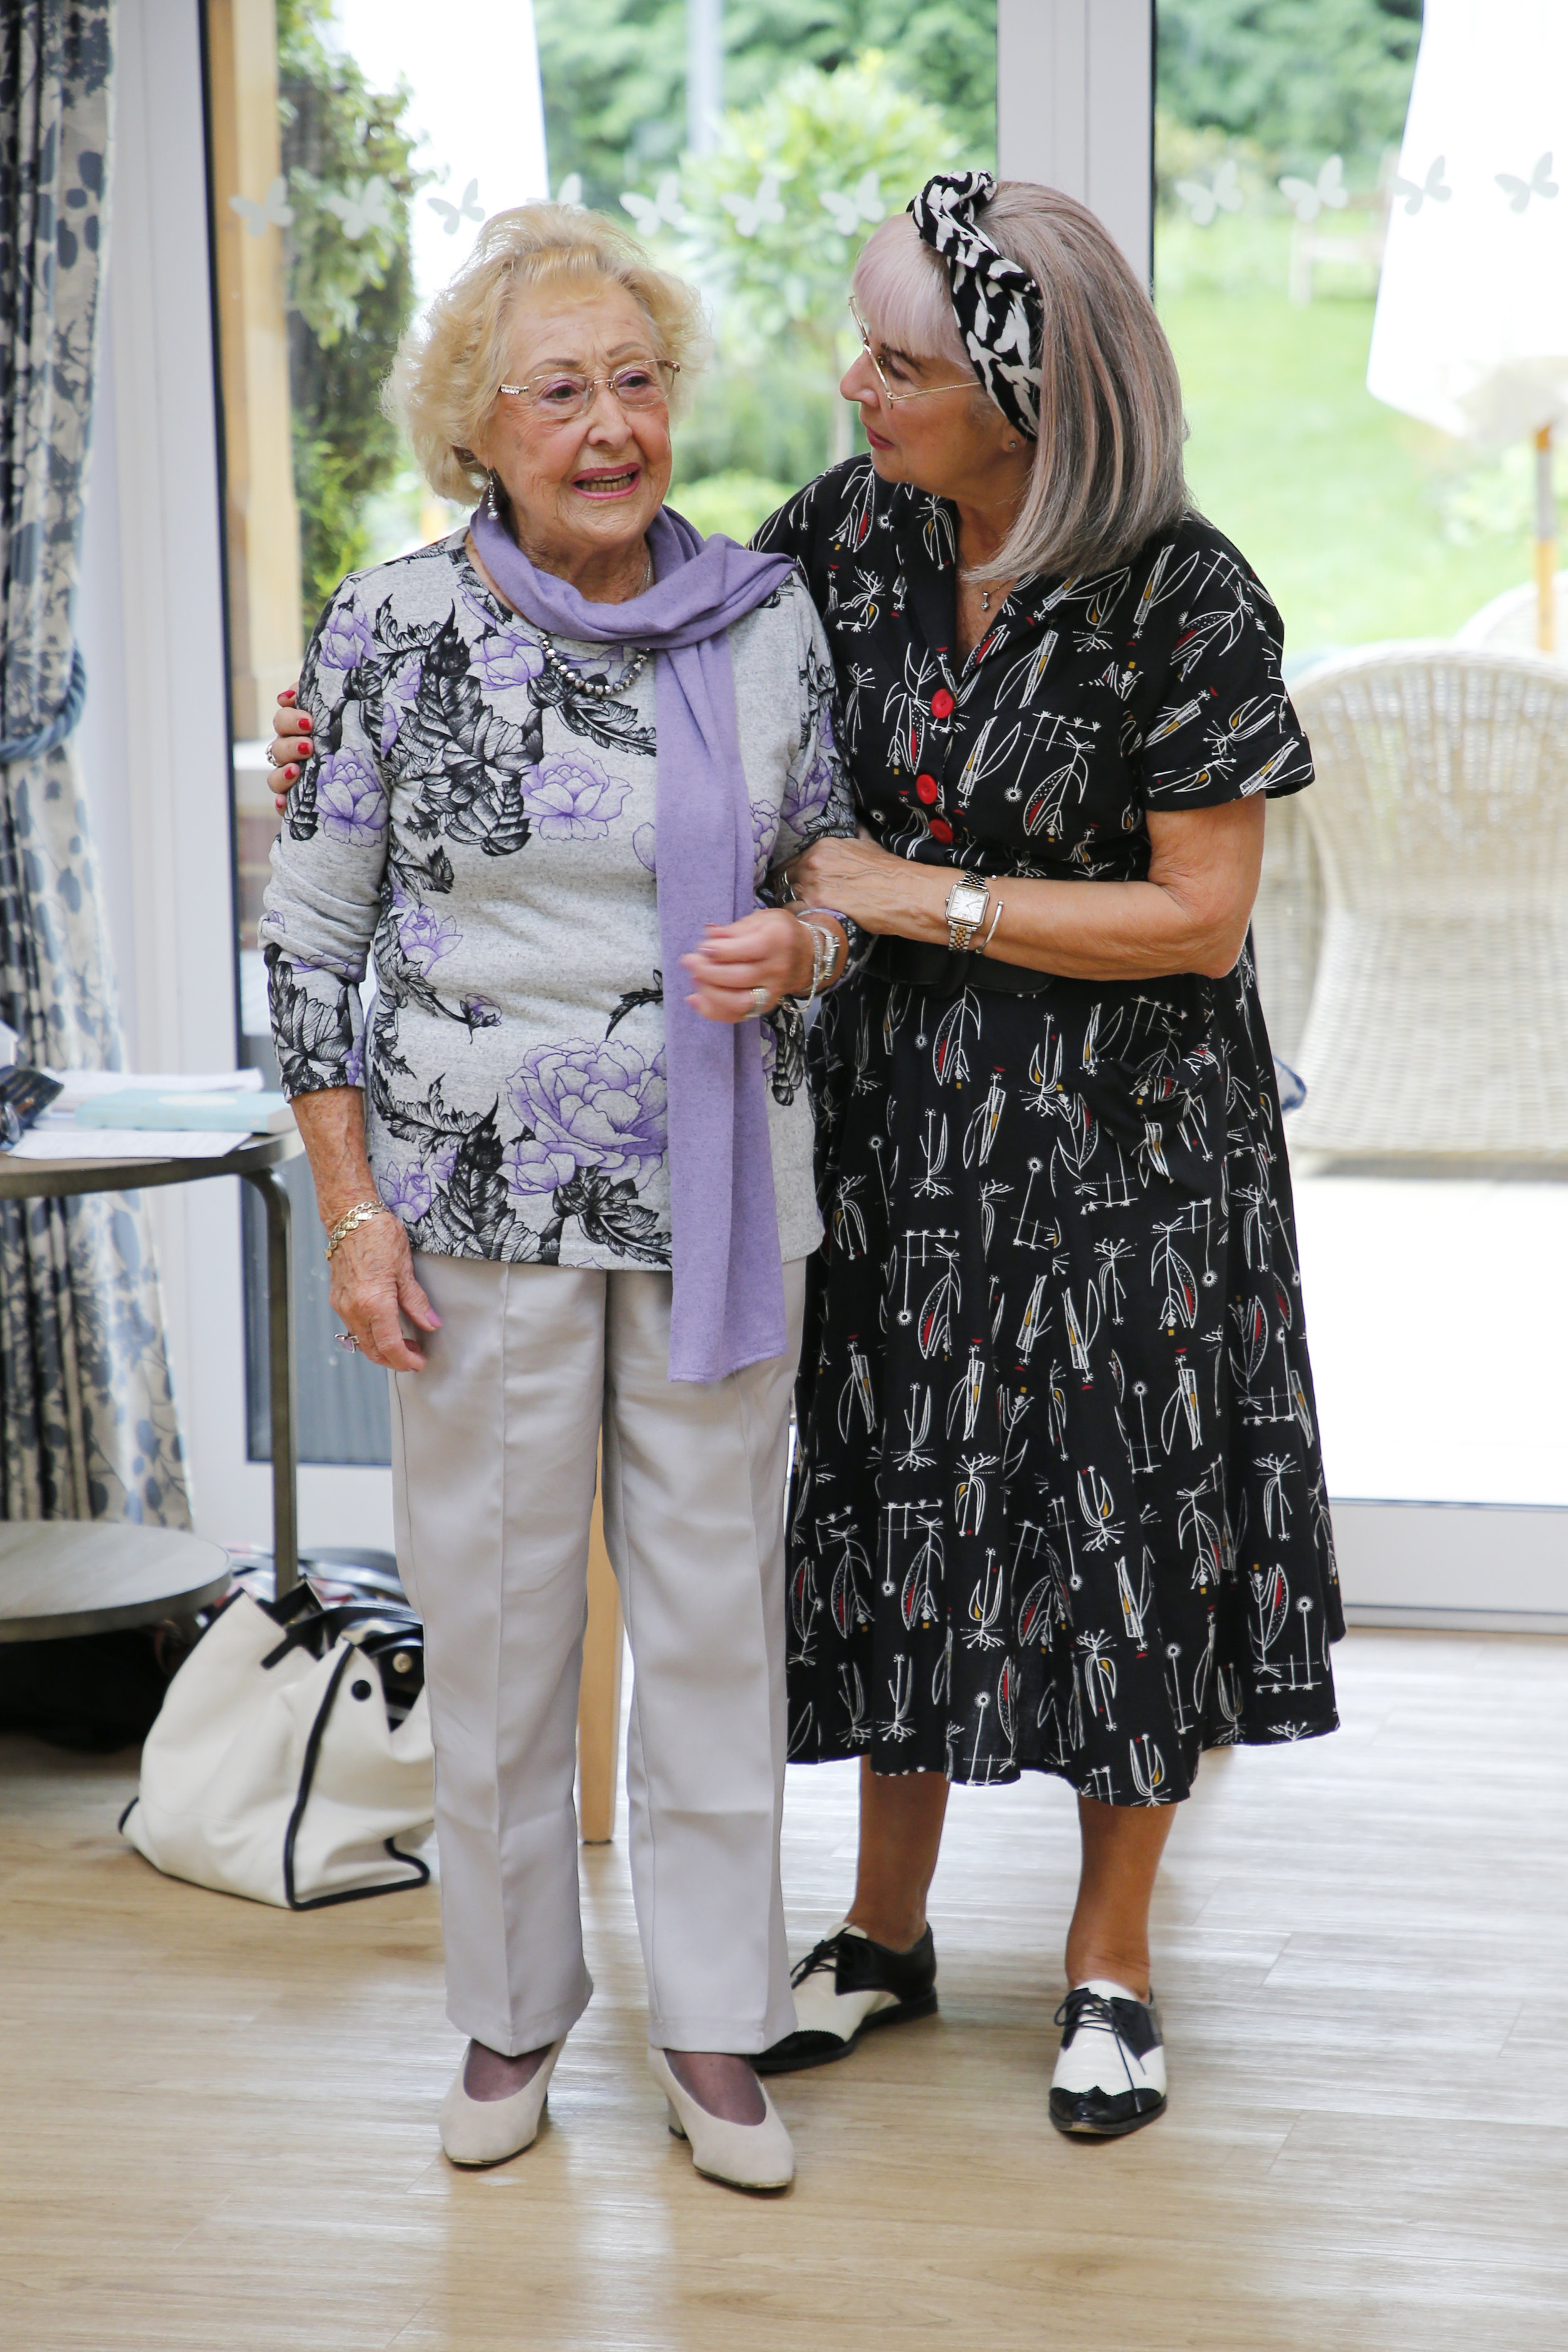 The wonderful nearly 90 Doreen showing us her heels and sharing her longevity secrets.